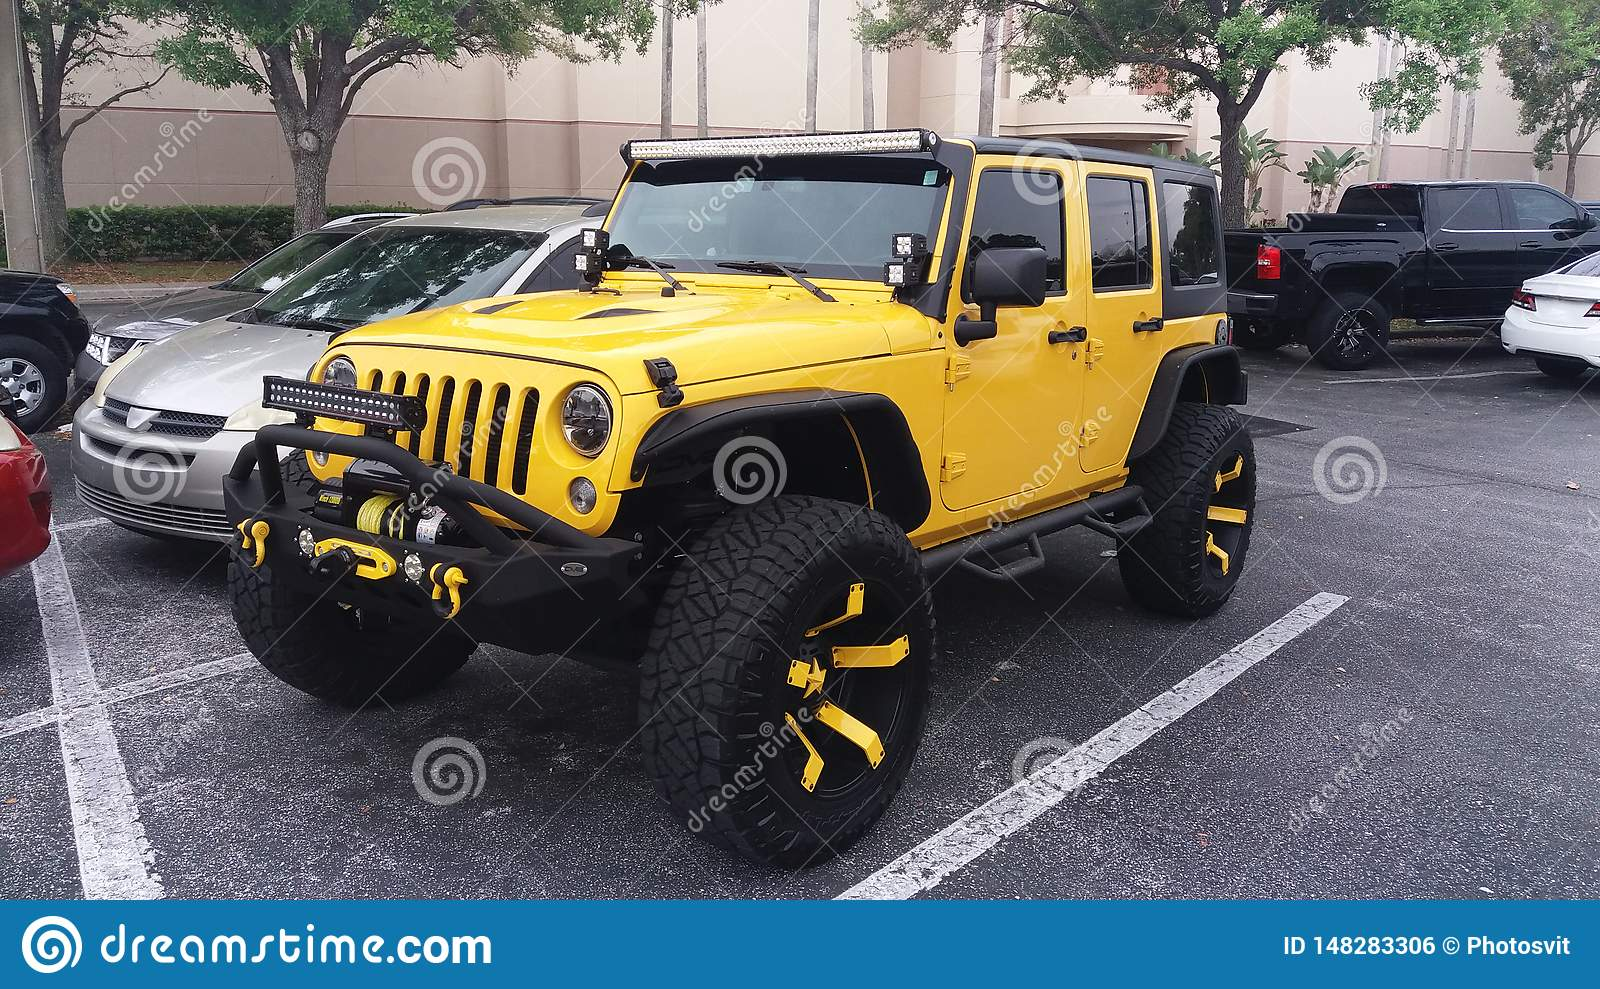 Parking concept. Yellow suv car parked outdoors. Modern vehicle. Transport and transportation concept. Car at paved